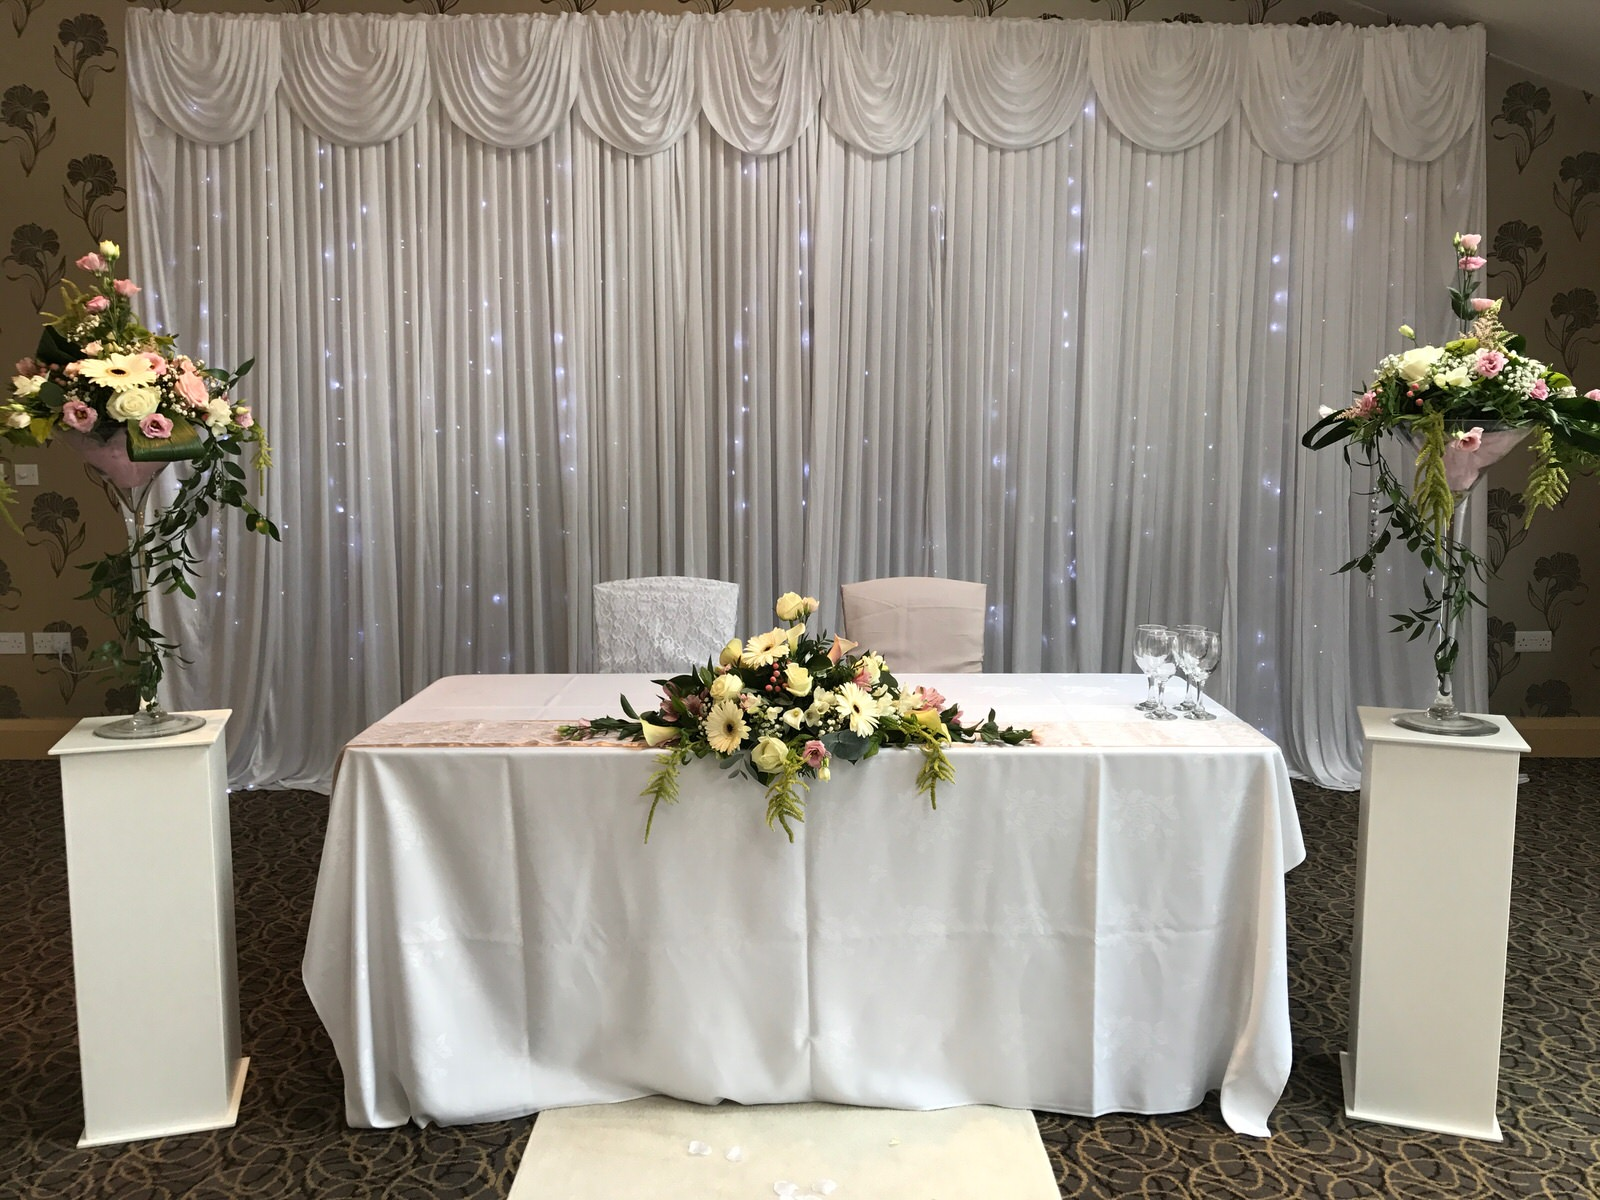 Copy of Civil ceremony table set